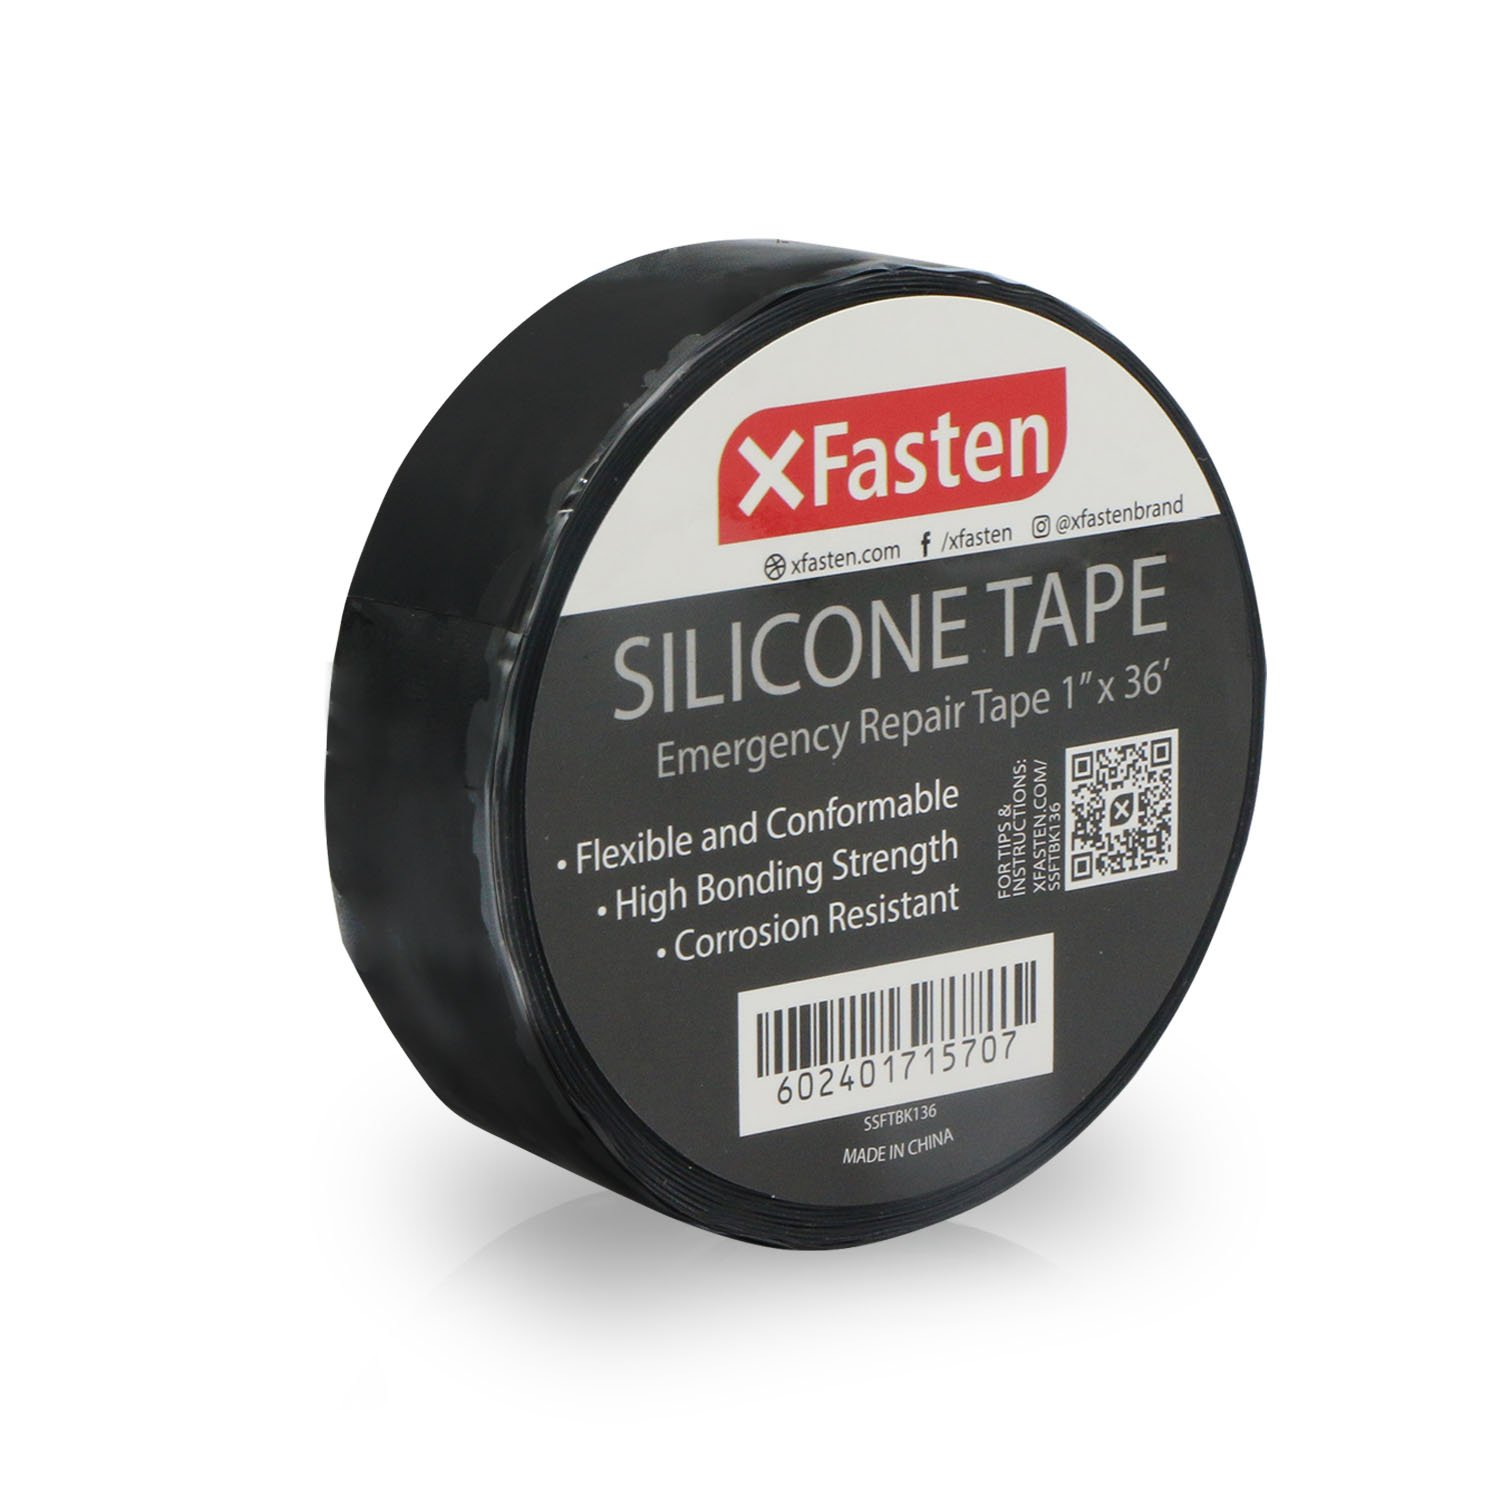 XFasten Silicone Self Fusing Tape 1-Inch x 36-Foot (Black) Silicone Repair Tape by XFasten